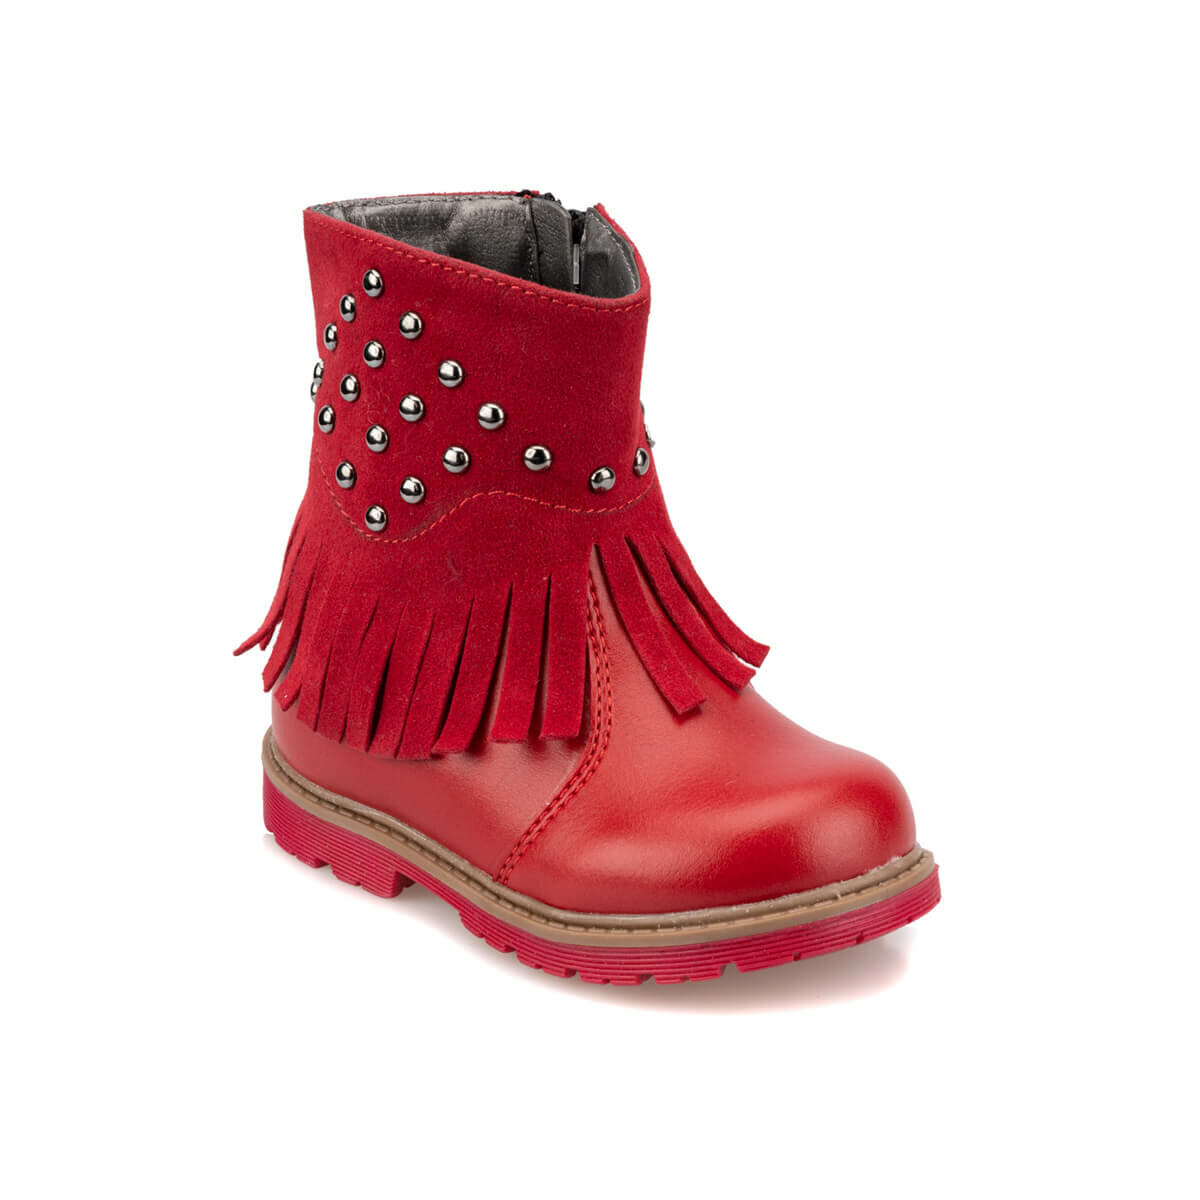 FLO 92.511765.B Red Female Child Boots Polaris